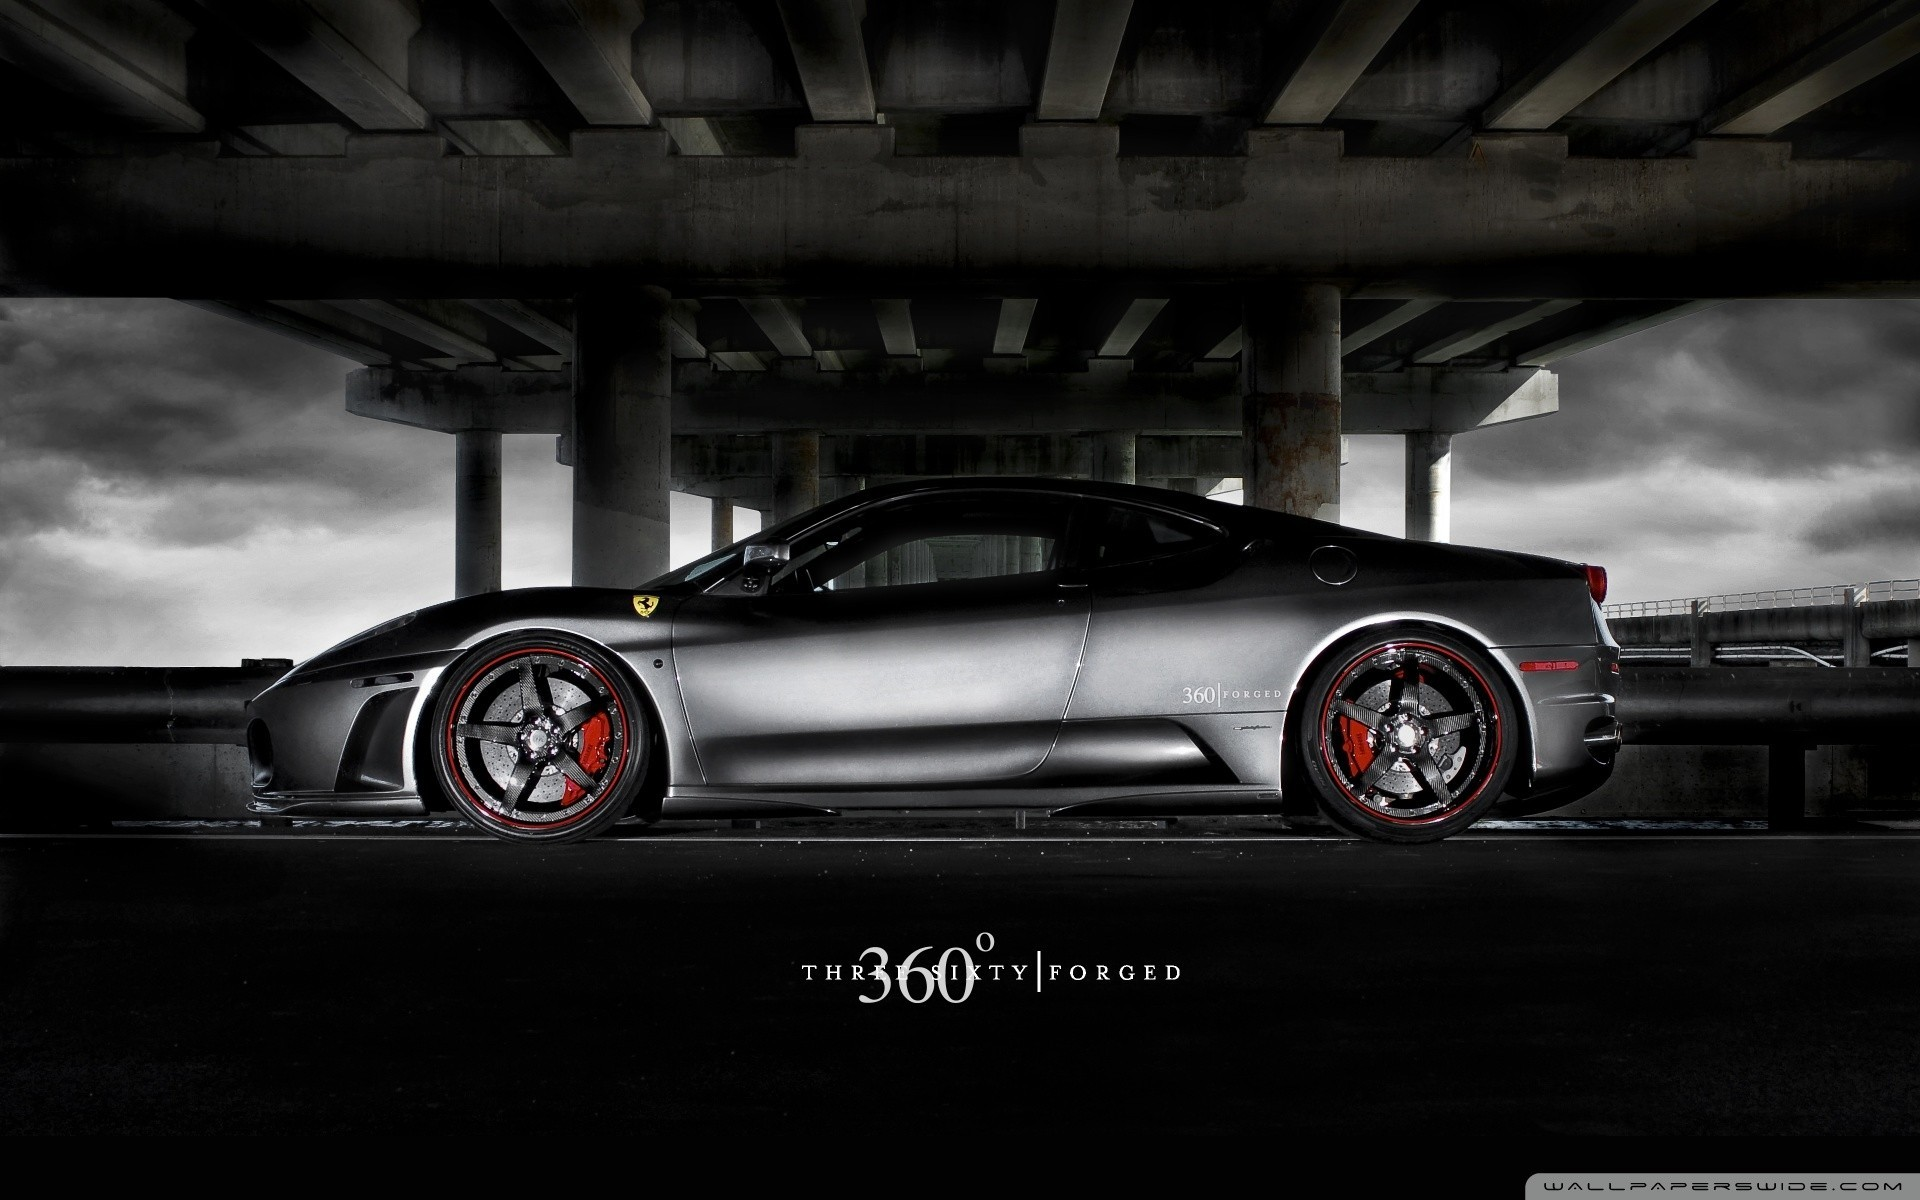 cars gray Ferrari ferrari HD Wallpaper